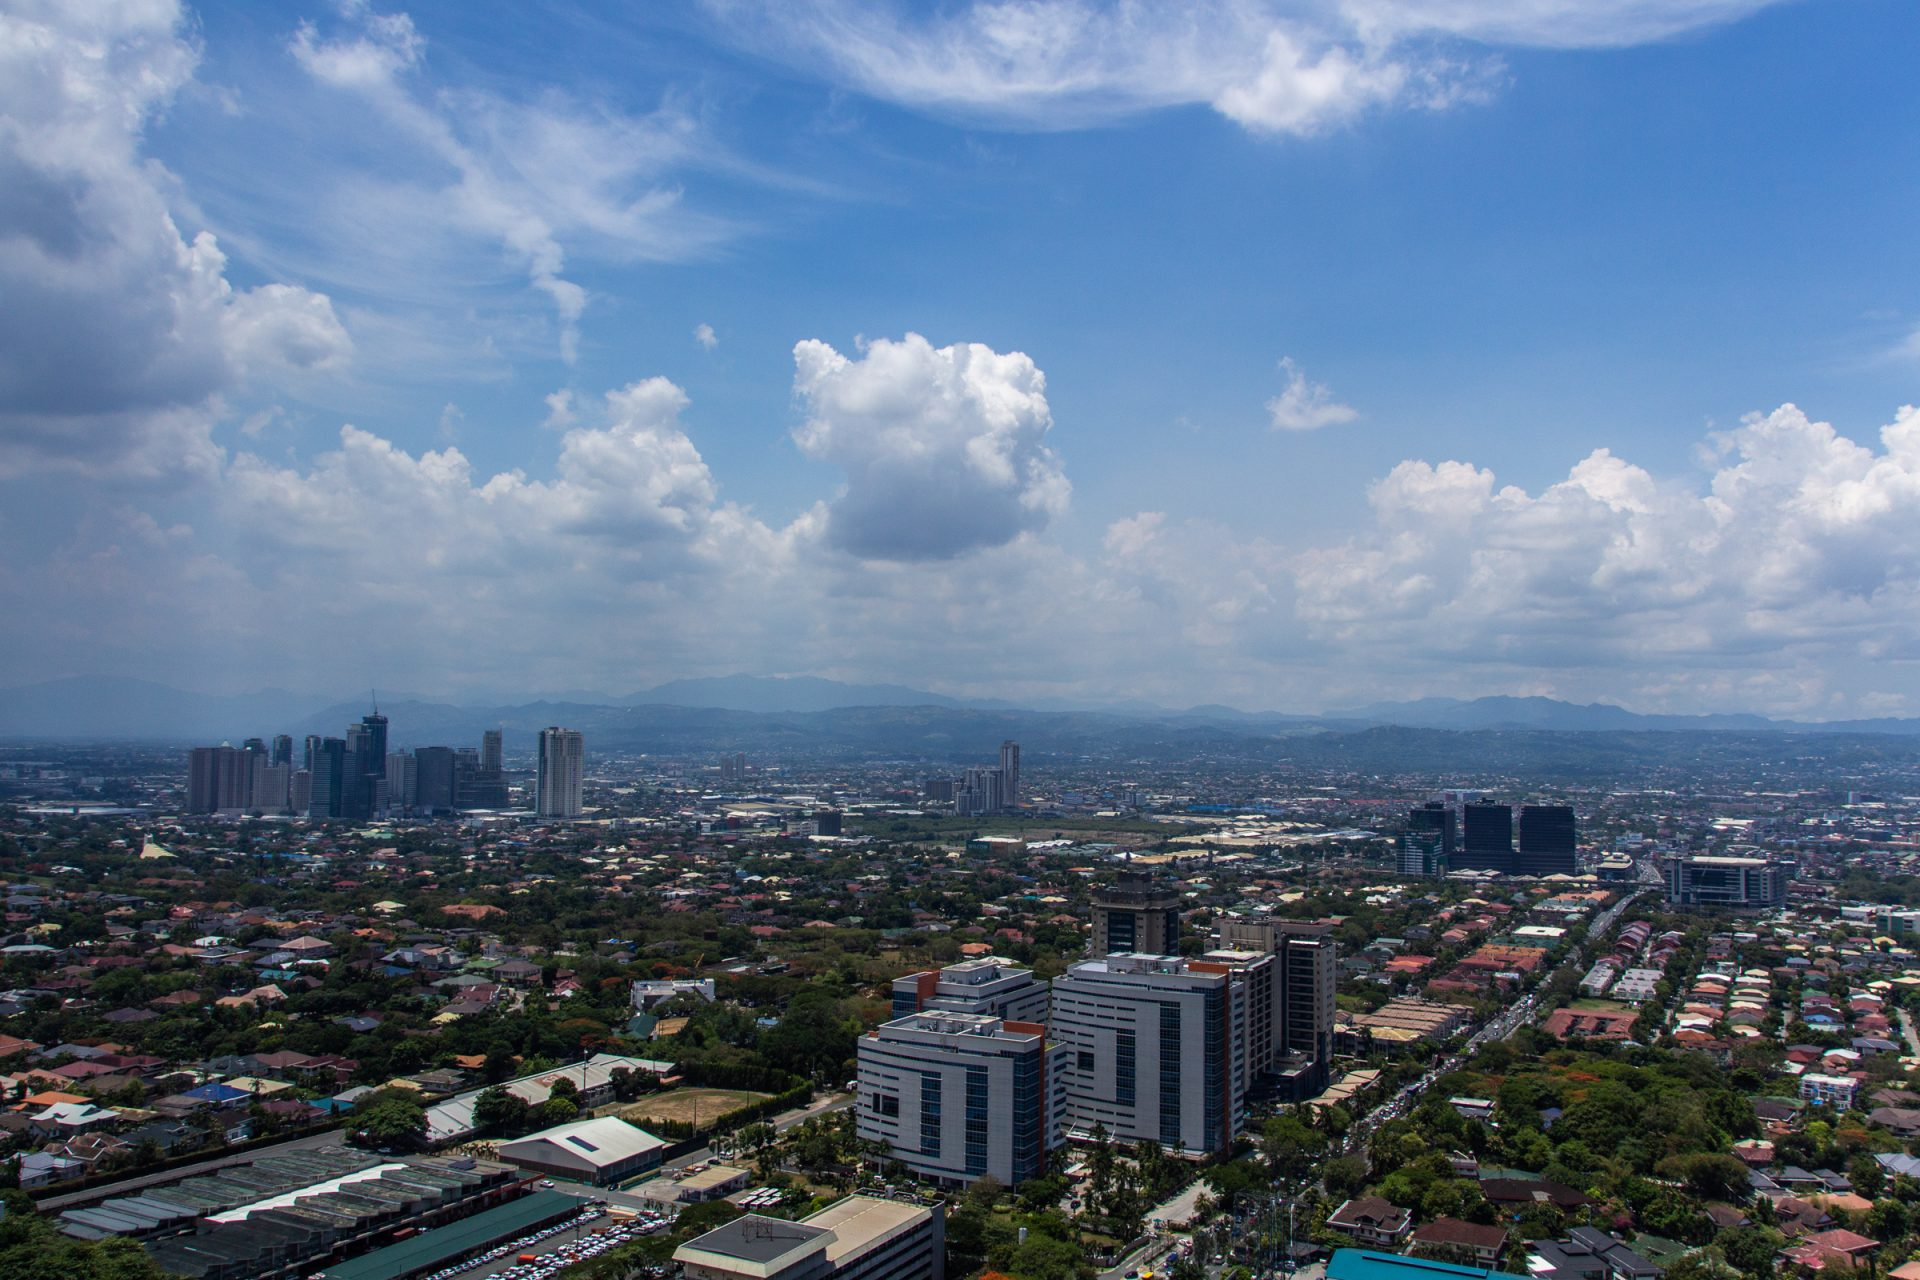 Urban Area In Manila In The Philippines